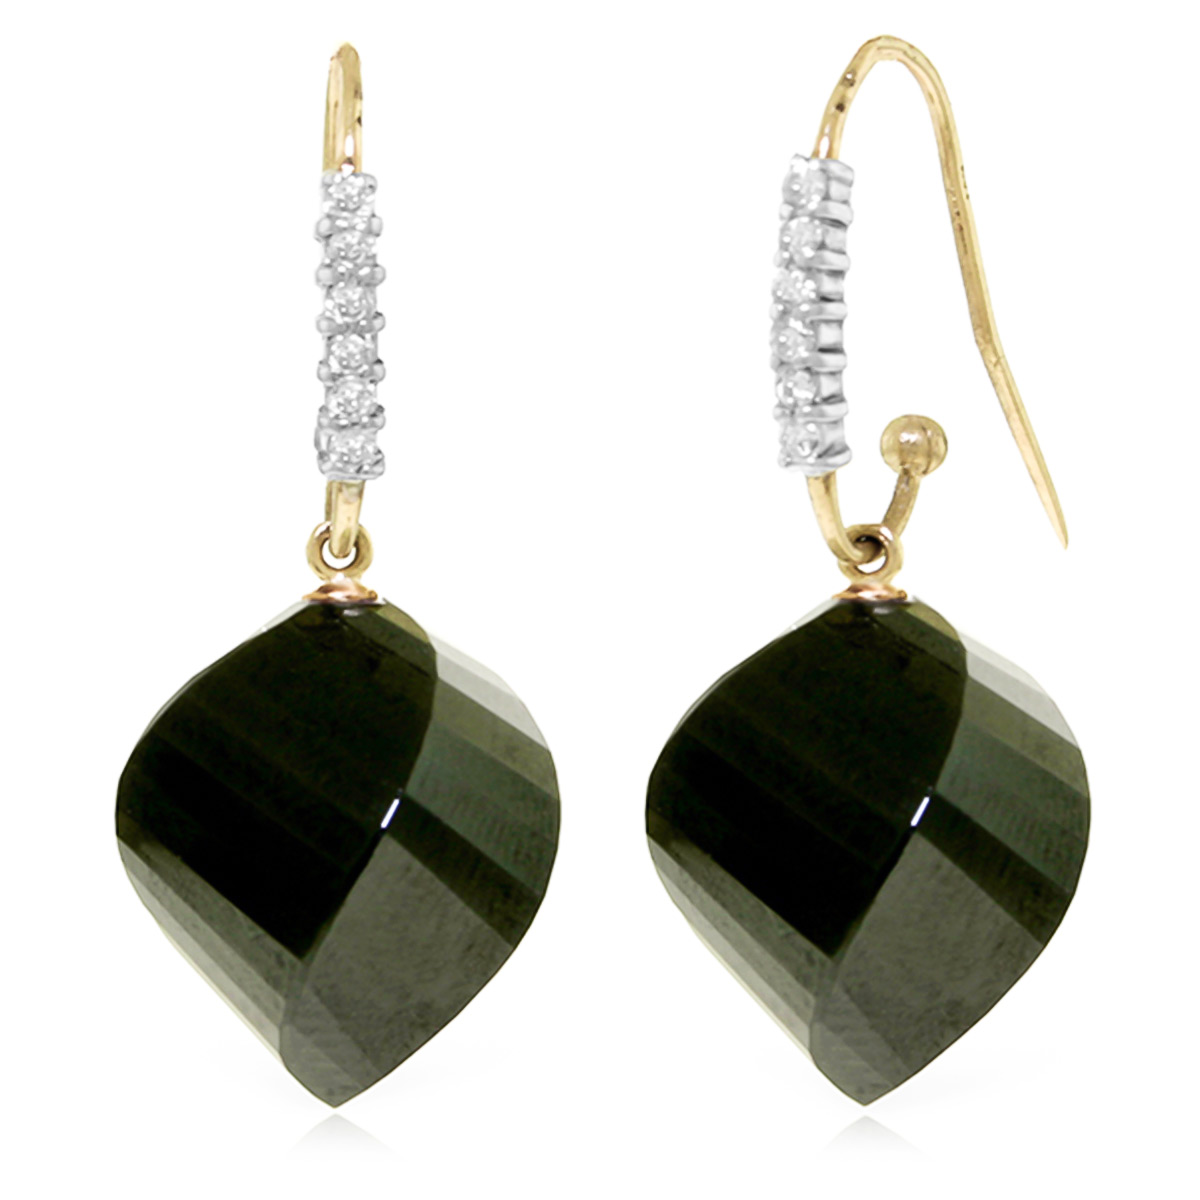 Black Spinel Drop Earrings 31.18 ctw in 9ct Gold